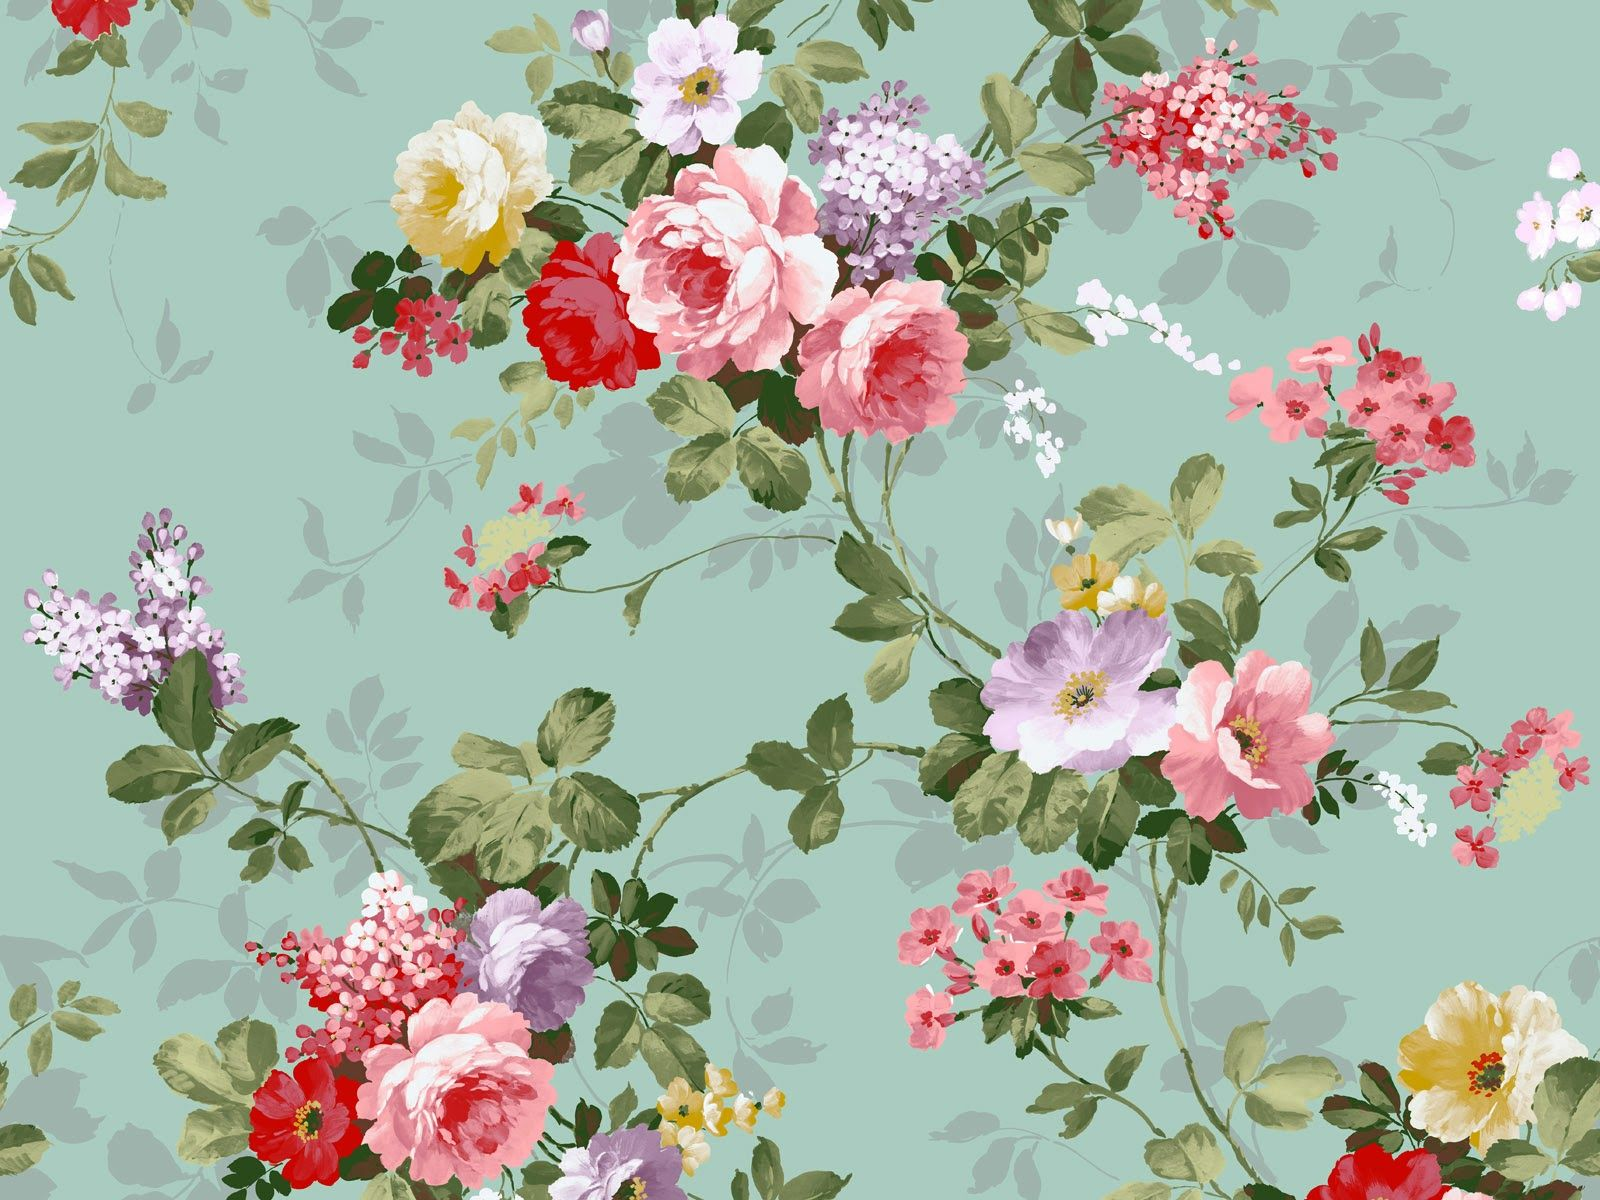 Vintage wallpaper flowers  Vintage flower wallpaper - beautiful desktop wallpapers 2014 ...